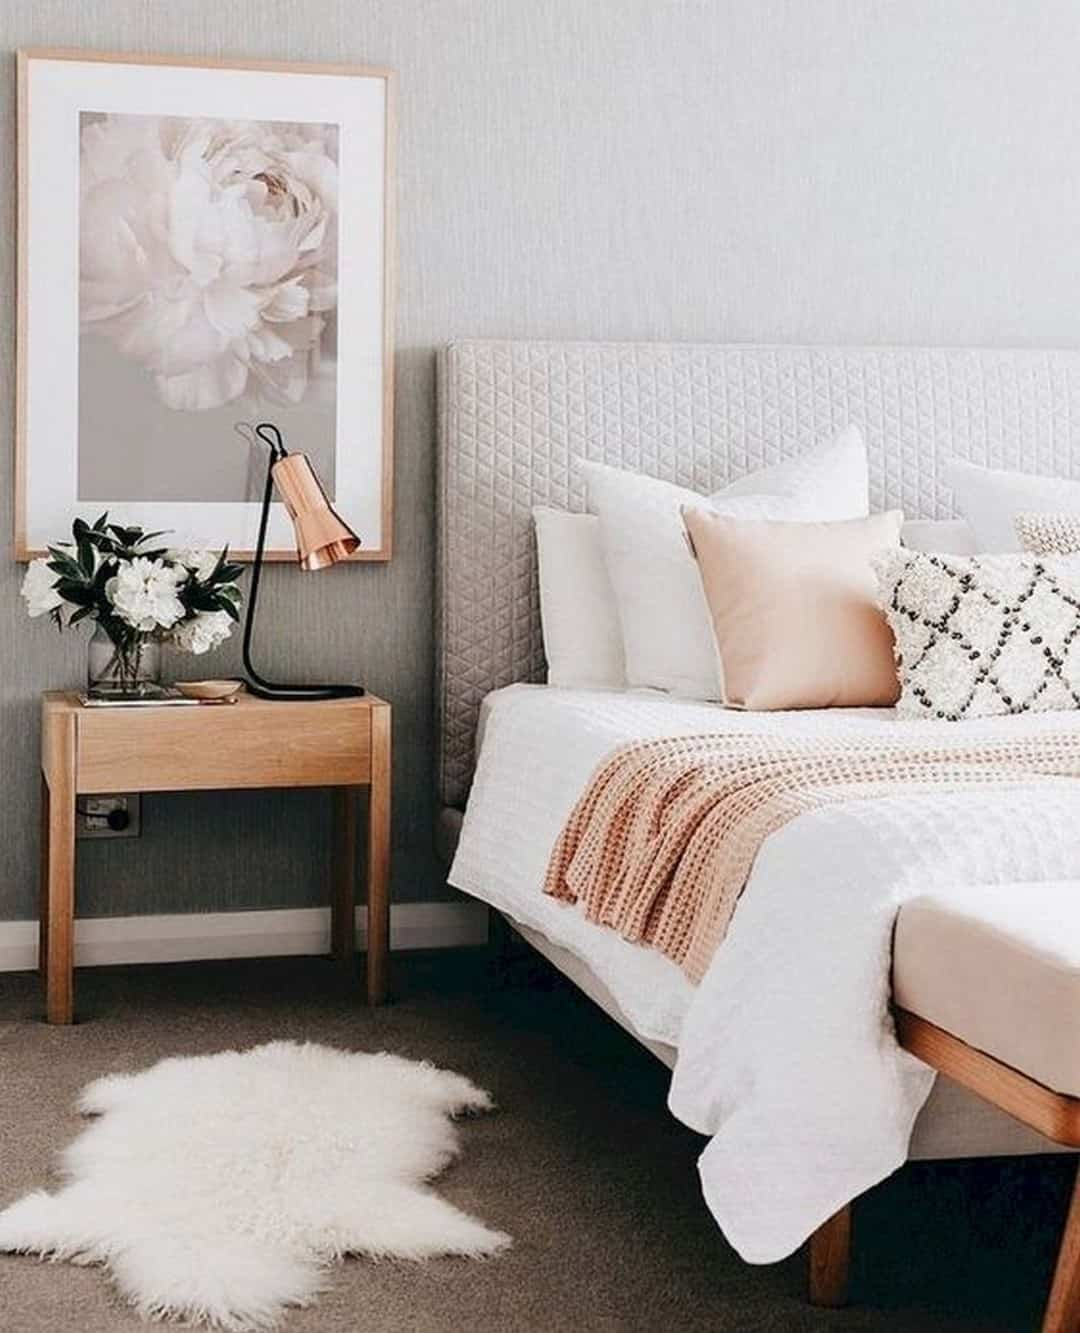 Upholstered beige headboards